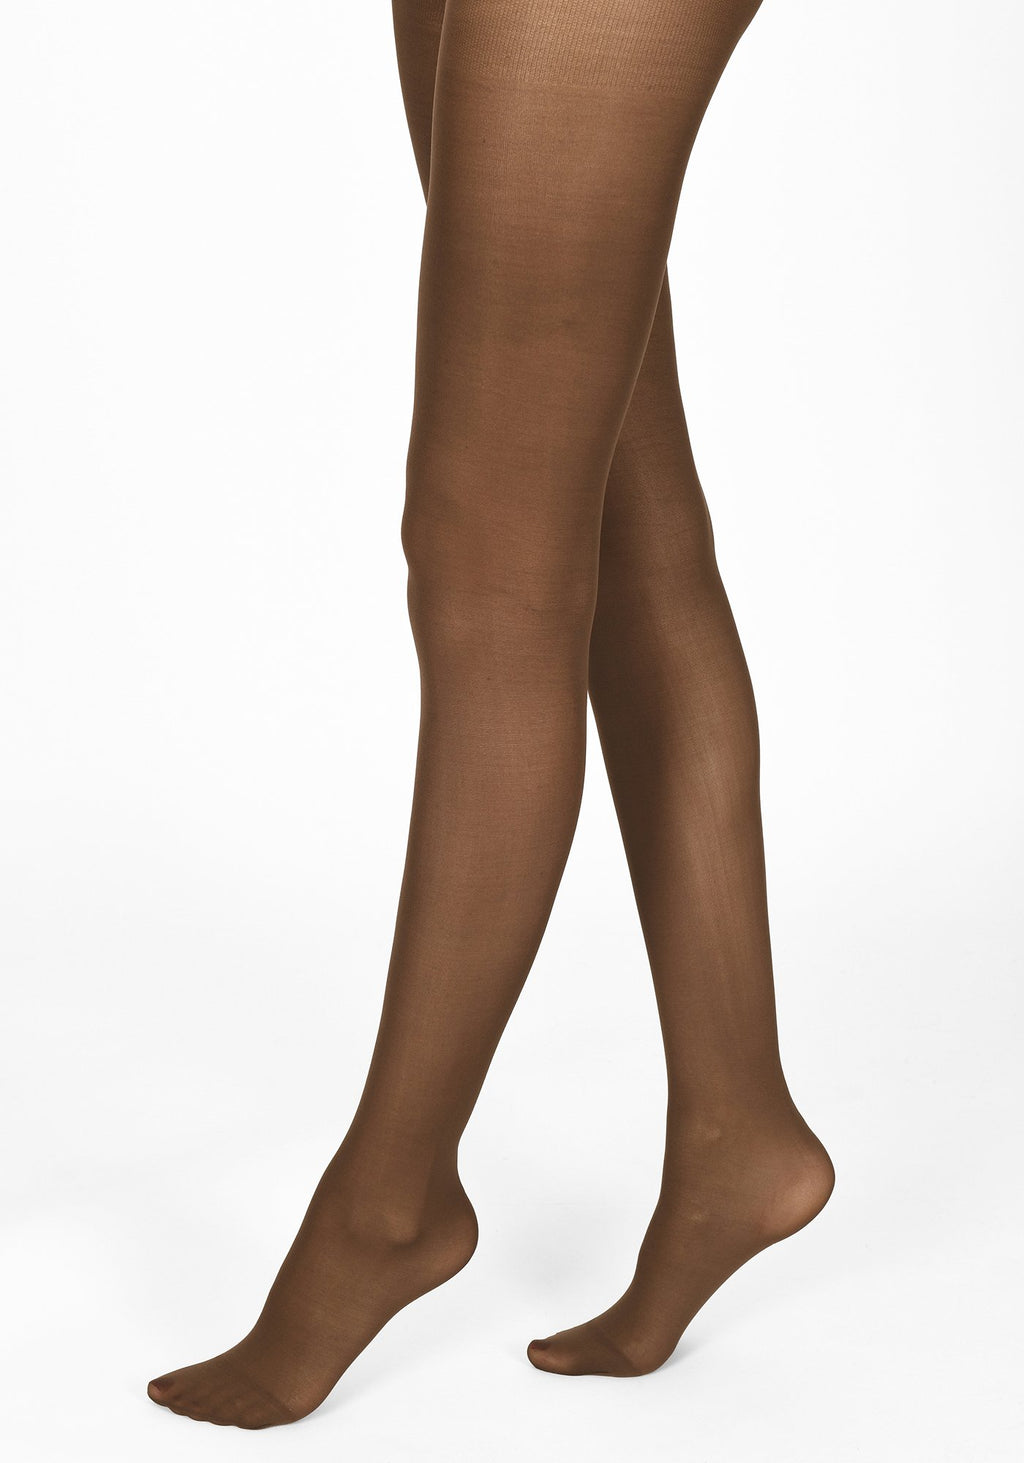 dark brown tights 40 denier 1